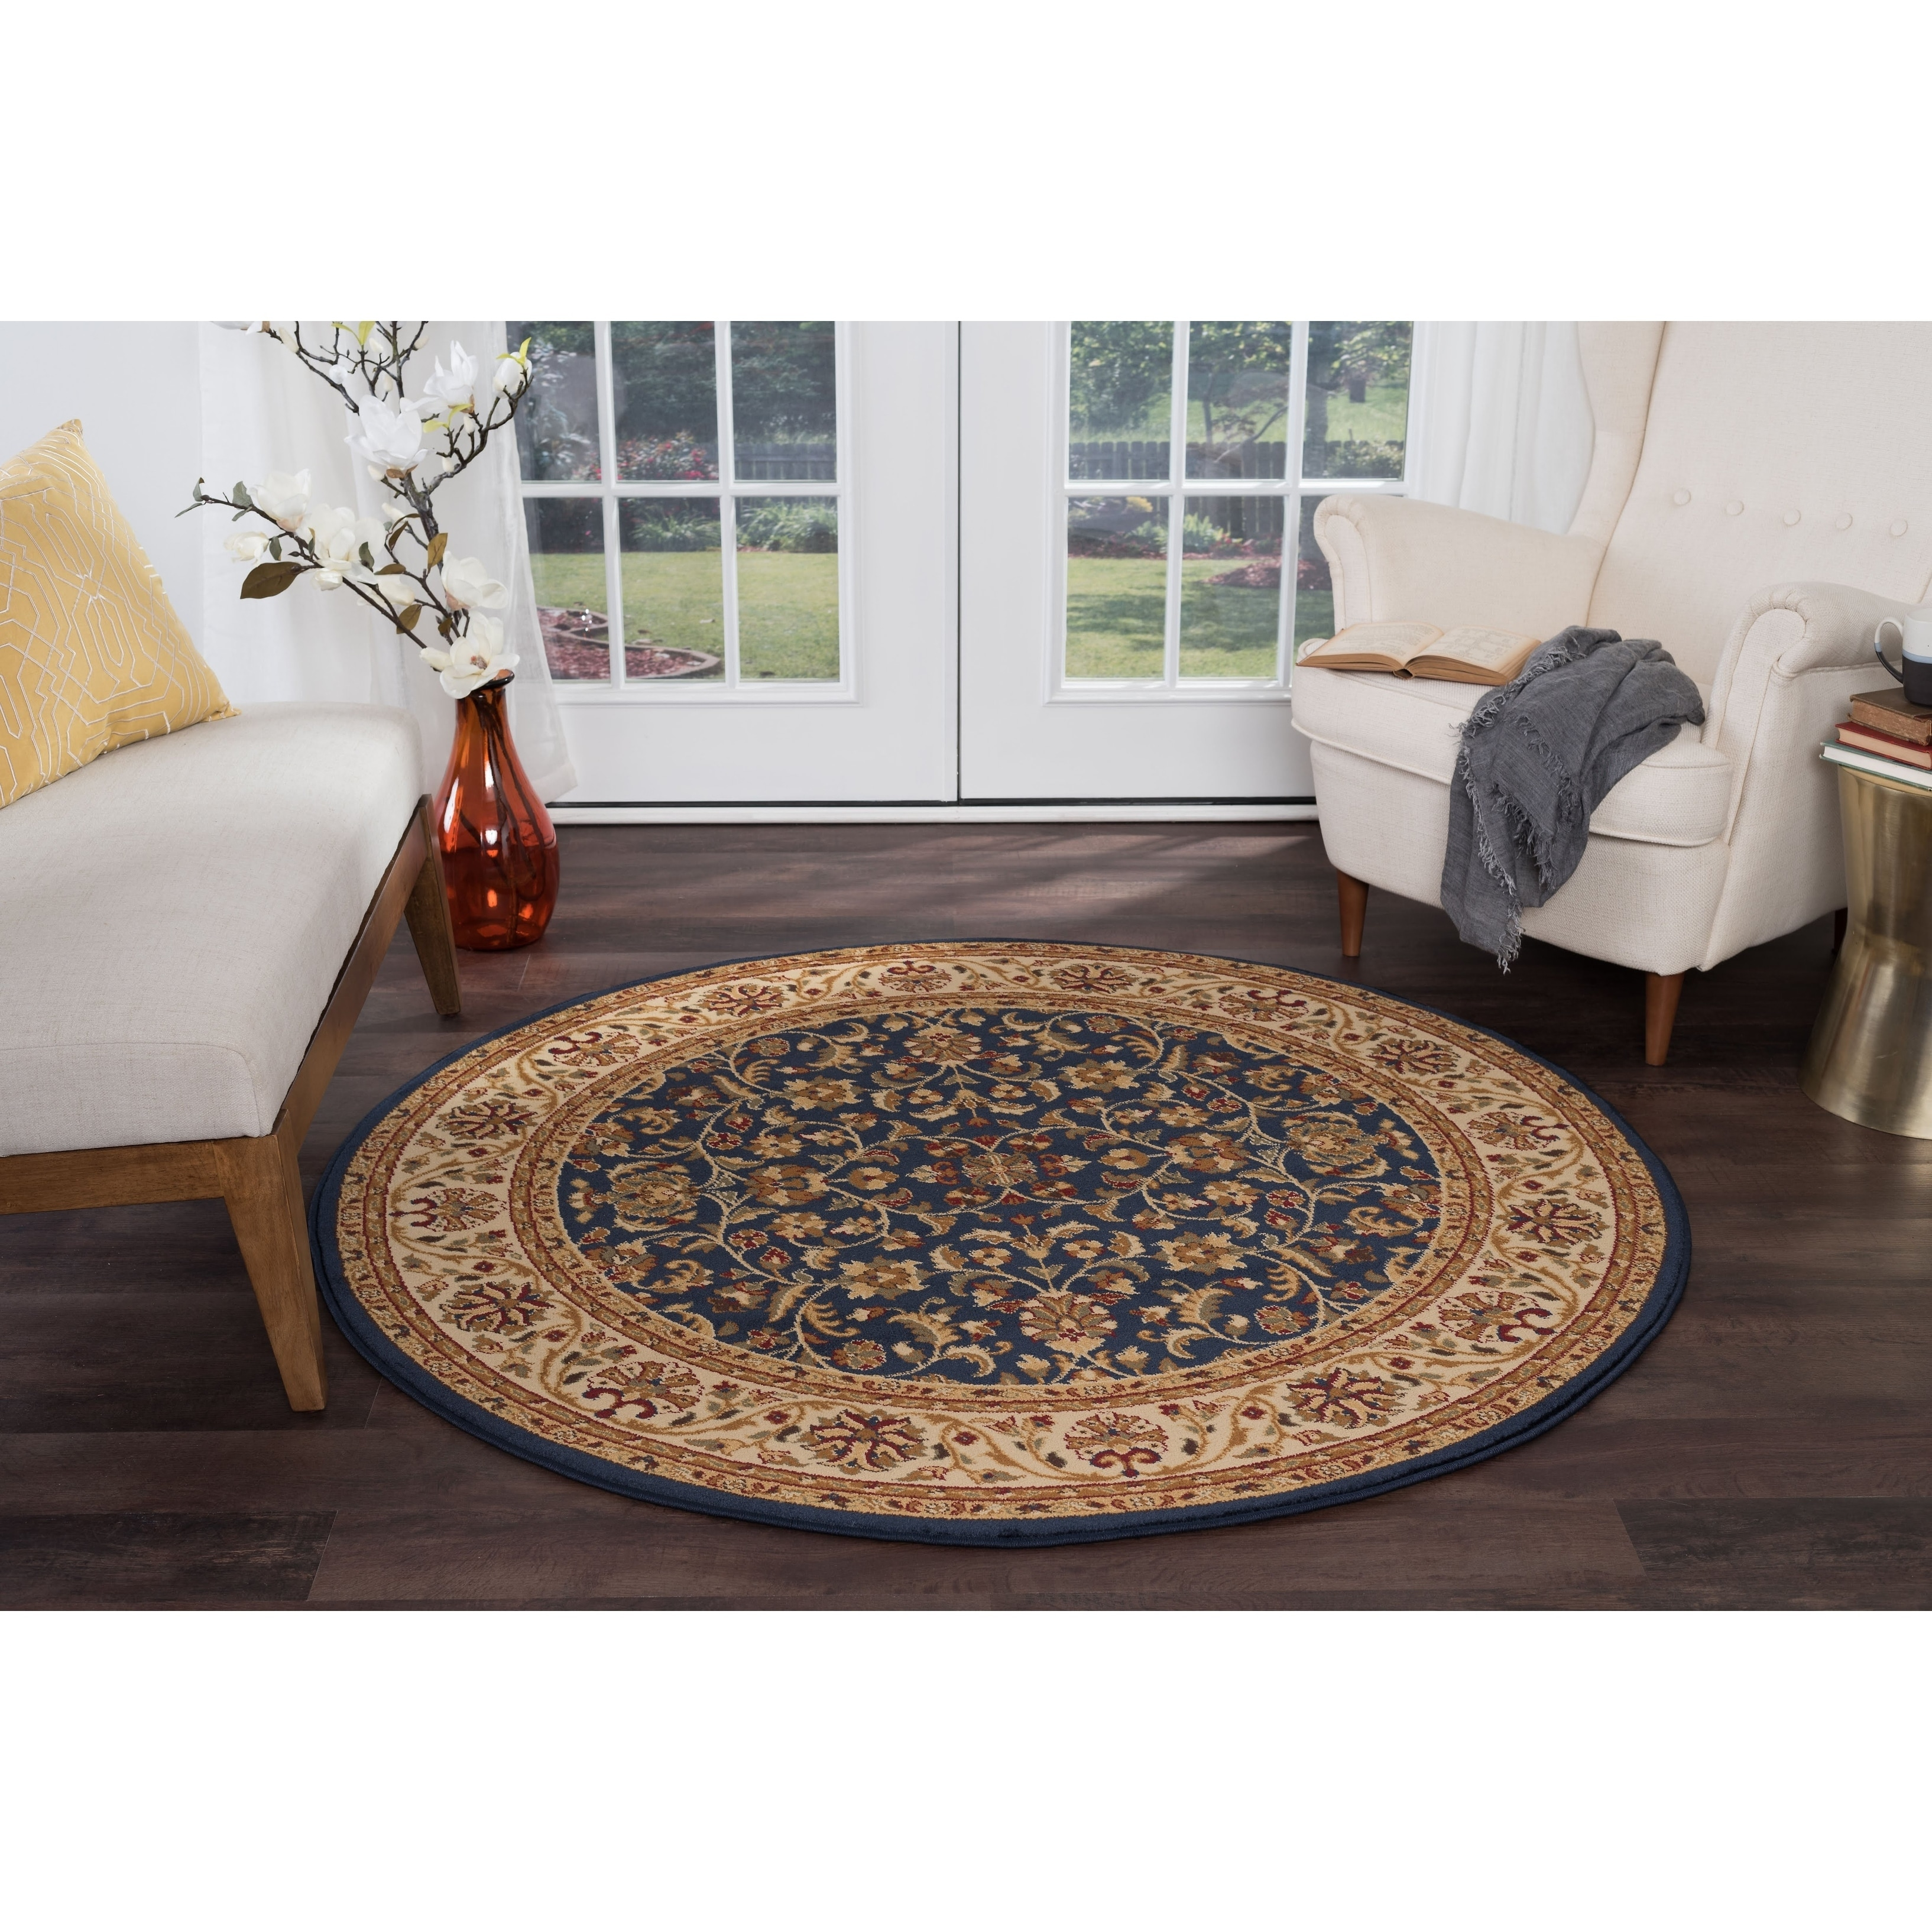 Alise Rugs  Soho Transitional Oriental Round Area Rug - 7'10 x 7'10